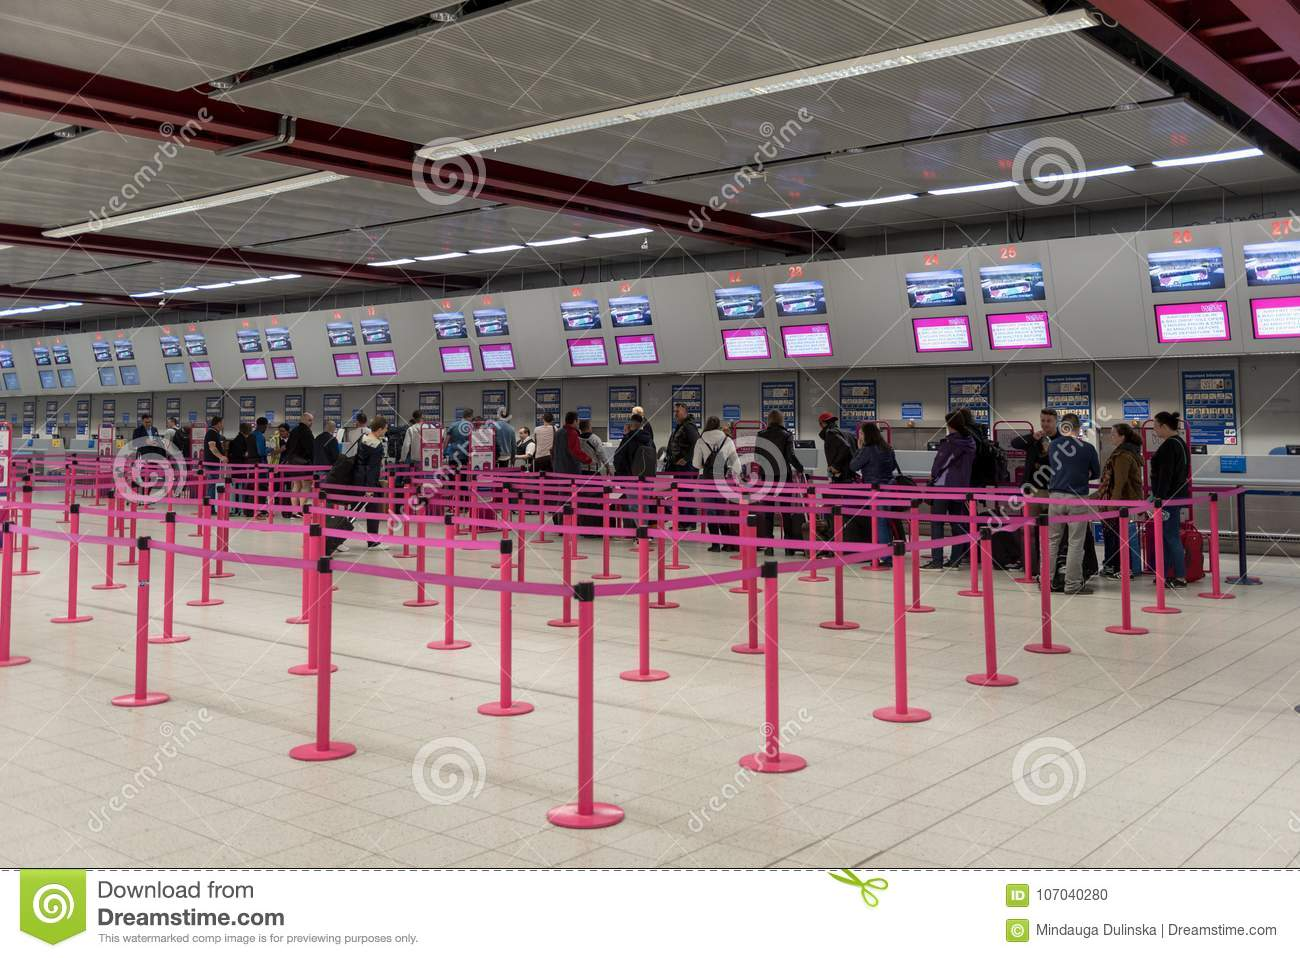 17 Wizzair Lines Photos Free Royalty Free Stock Photos From Dreamstime